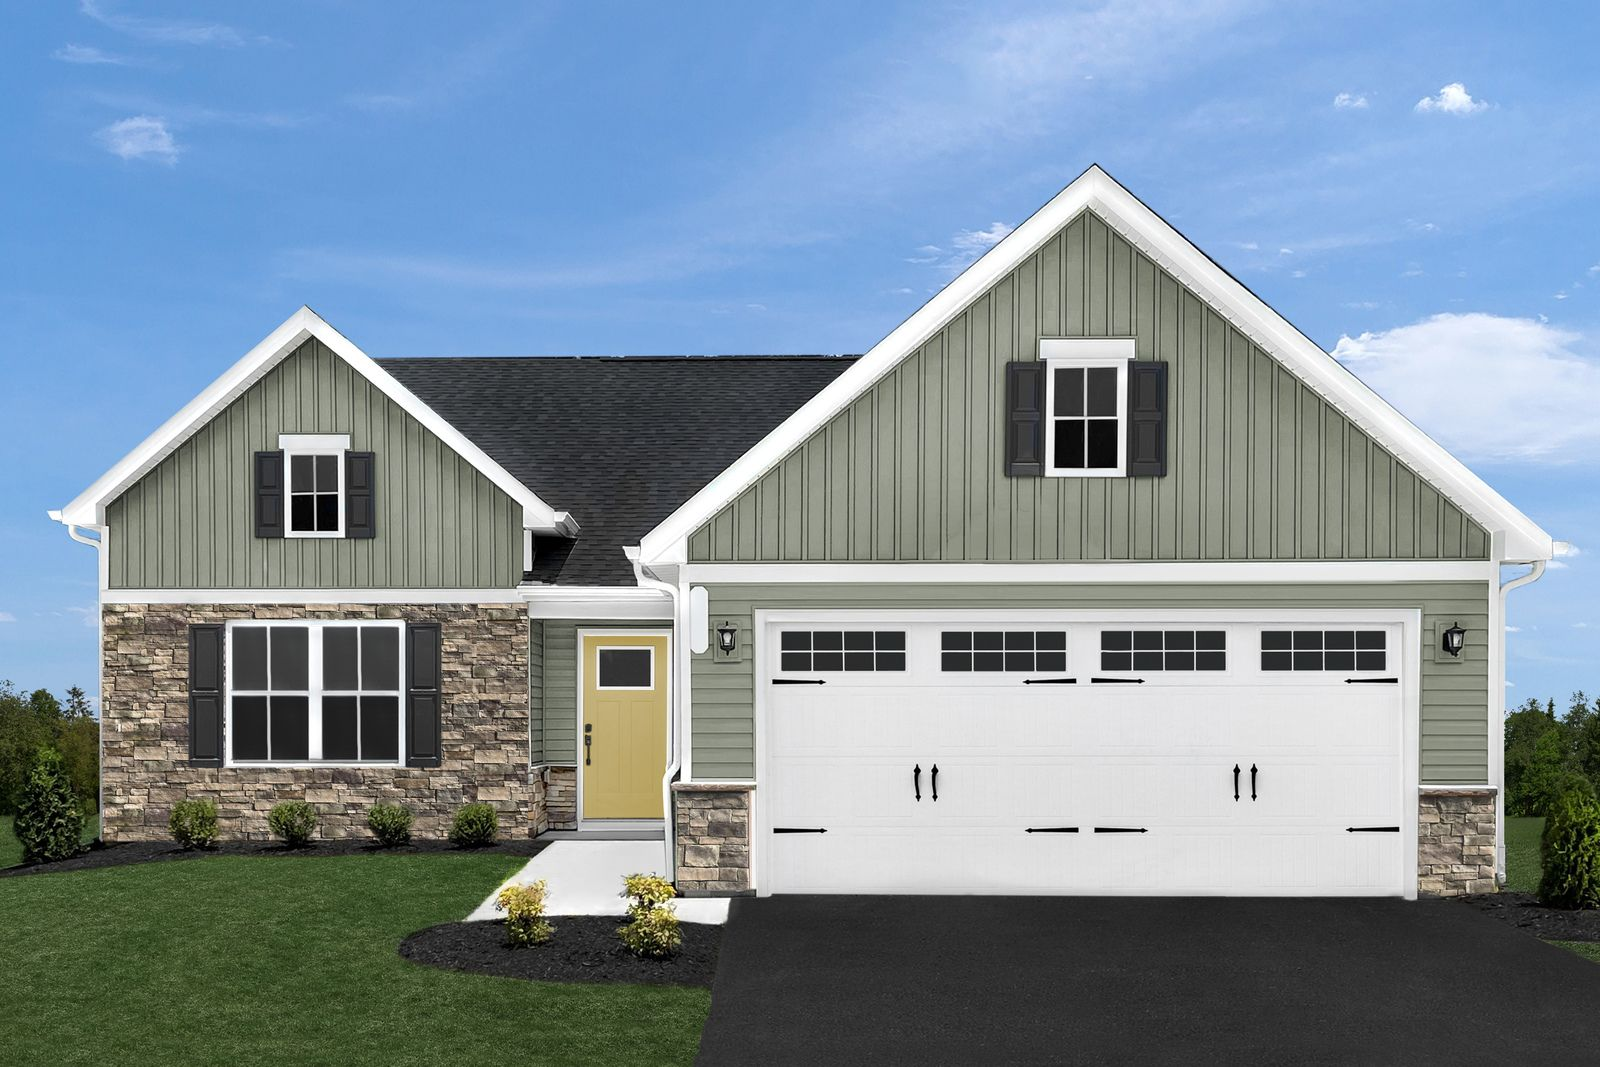 Welcome to Legacy Acres:Lowest priced new ranch homes with 5-year tax abatement in Camden County. Basement and slab homesites available in a convenient location on Rt 73. Click here schedule your appointment today!